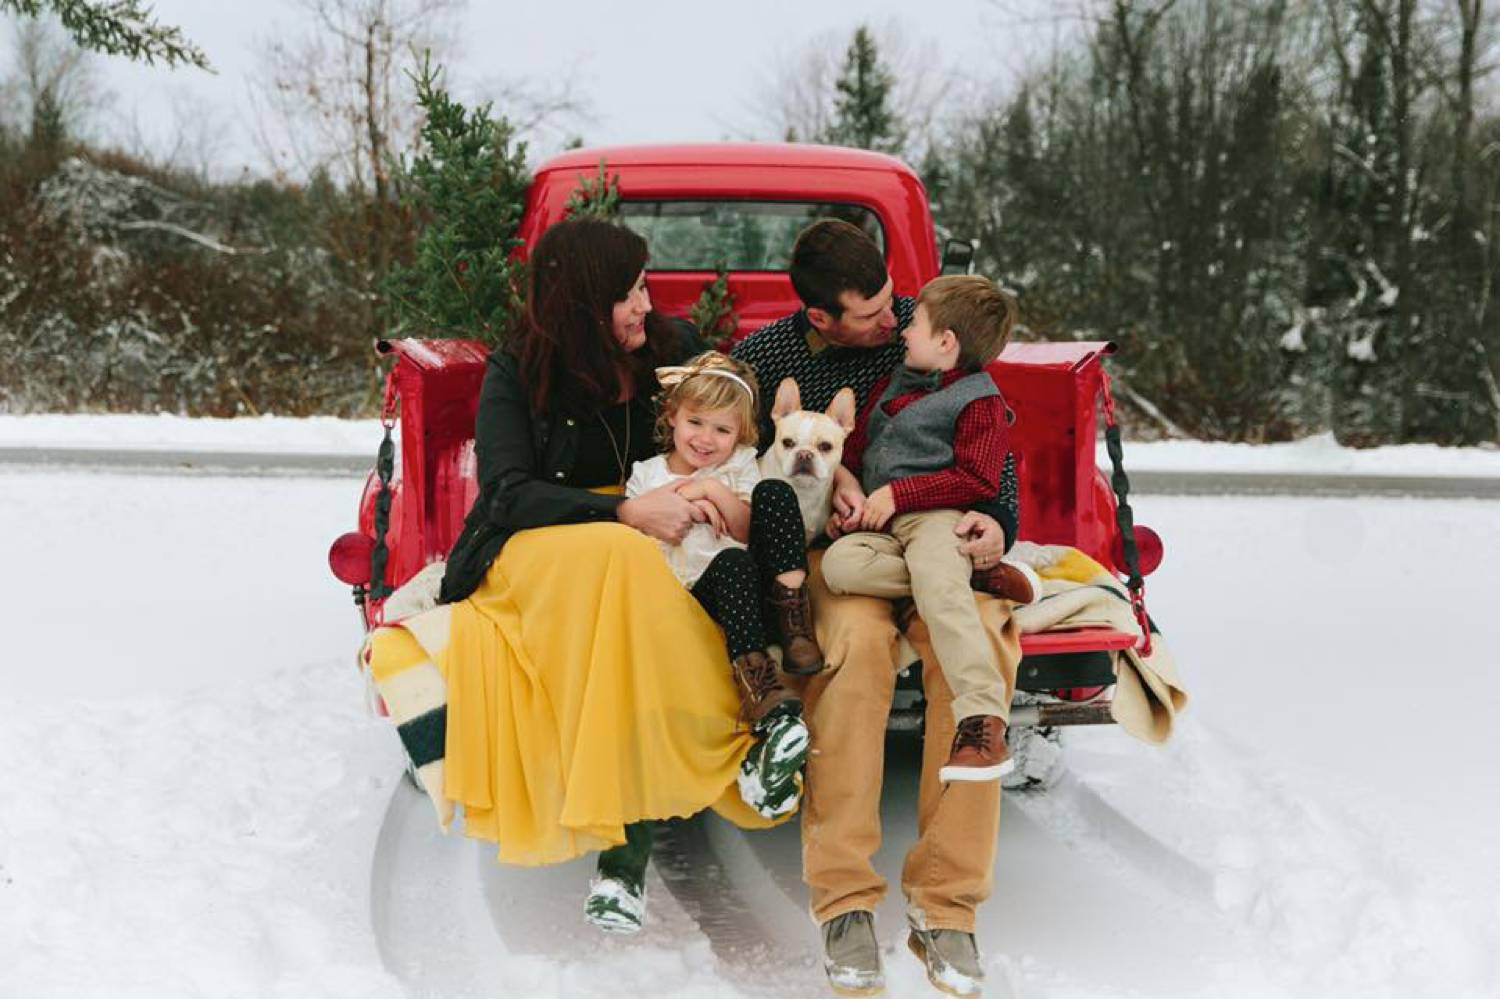 In this photo by Maine Tinker Photography, a mom, dad, two kids, and a small dog sit in the back of a vintage red truck that's parked in the snow. Christmas Mini Session: Ideas Families will ADORE!